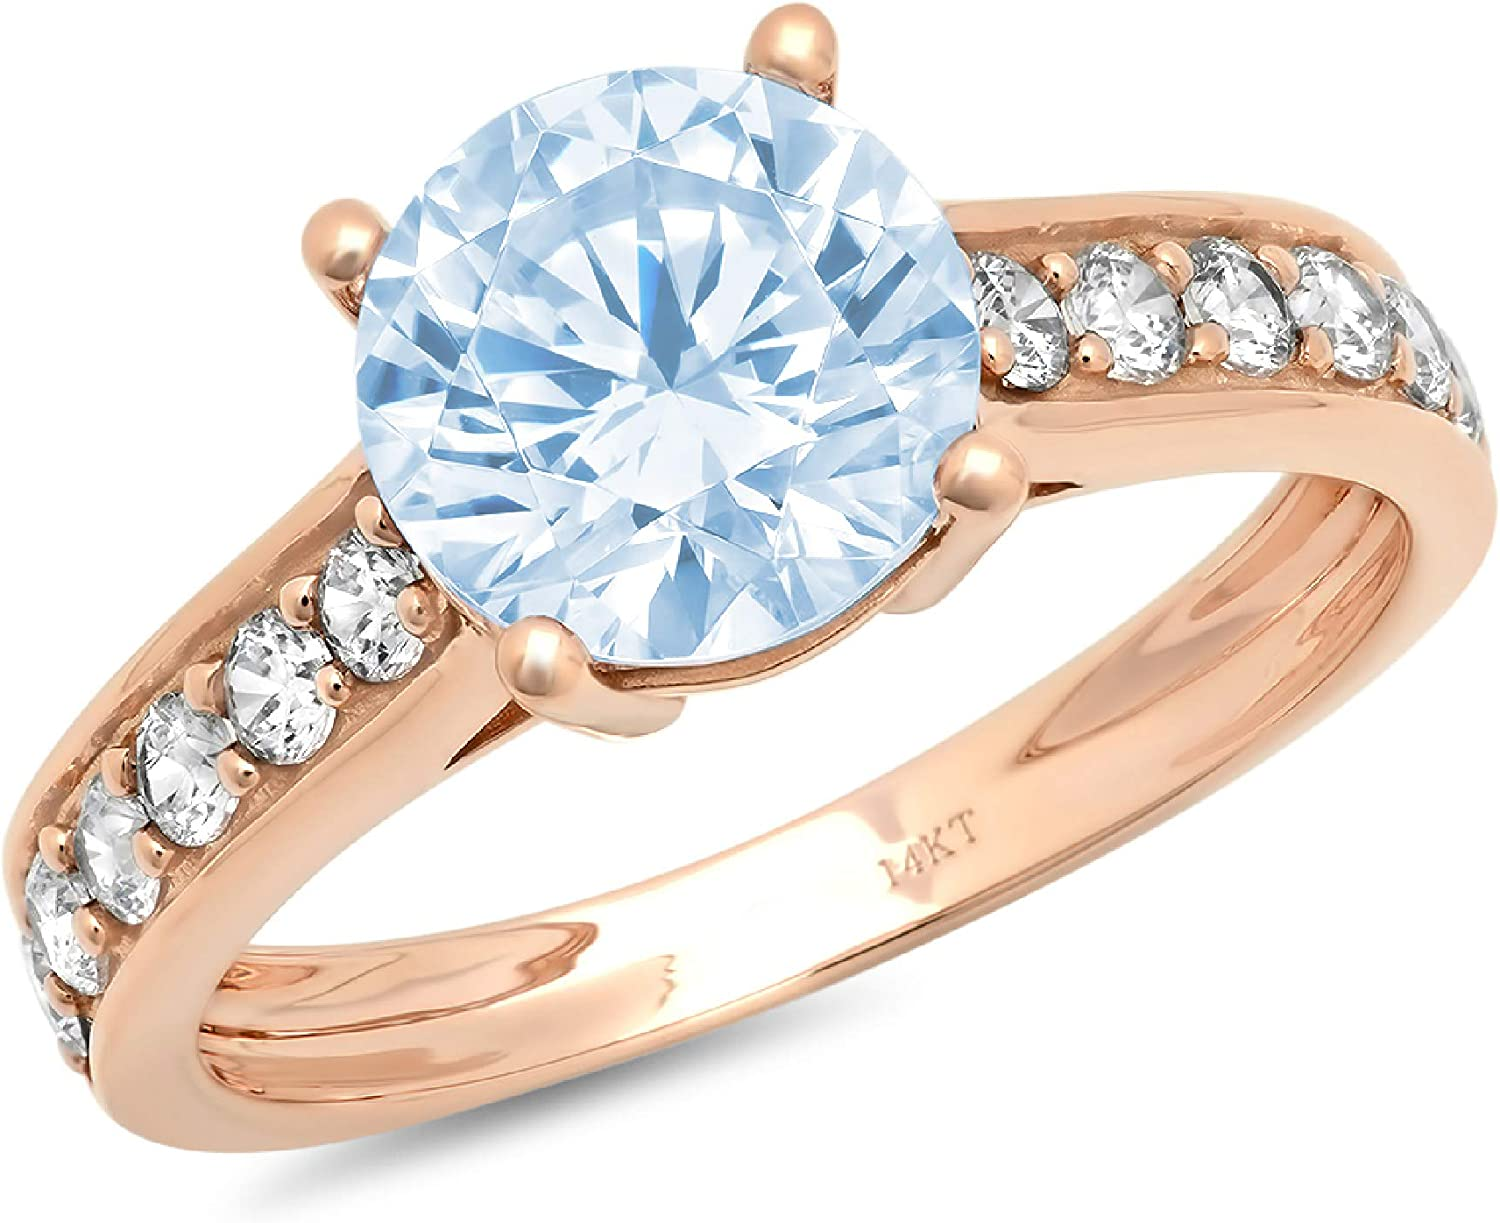 2.19ct Brilliant Round Cut Solitaire with accent Natural Sky Blue Topaz Gem Stone Ideal VVS1 Engagement Promise Statement Anniversary Bridal Wedding Accent ring 14k Pink Rose Gold